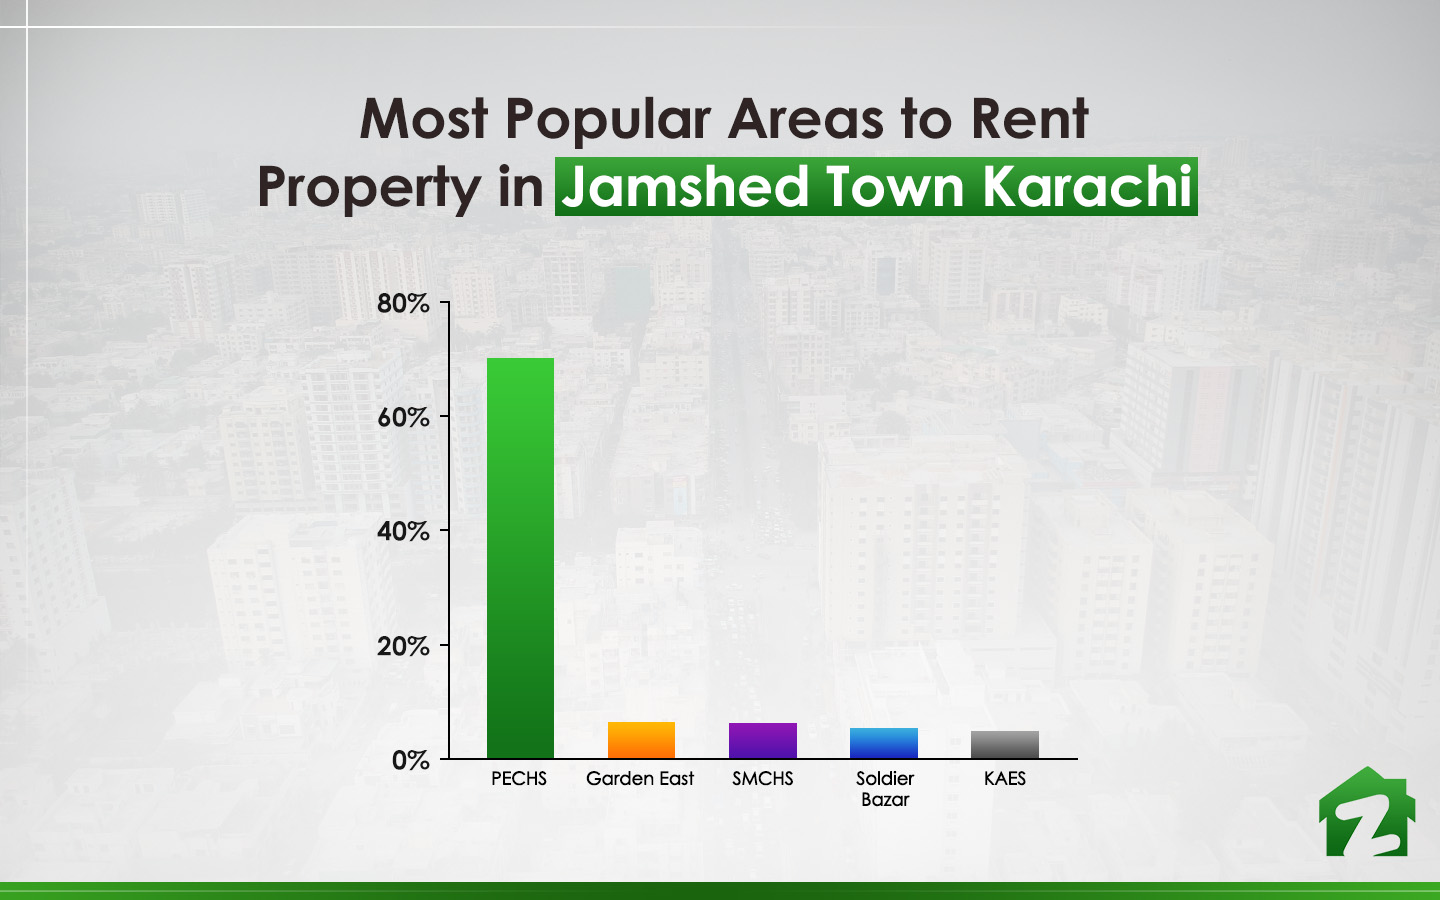 Most popular areas for rental purposes